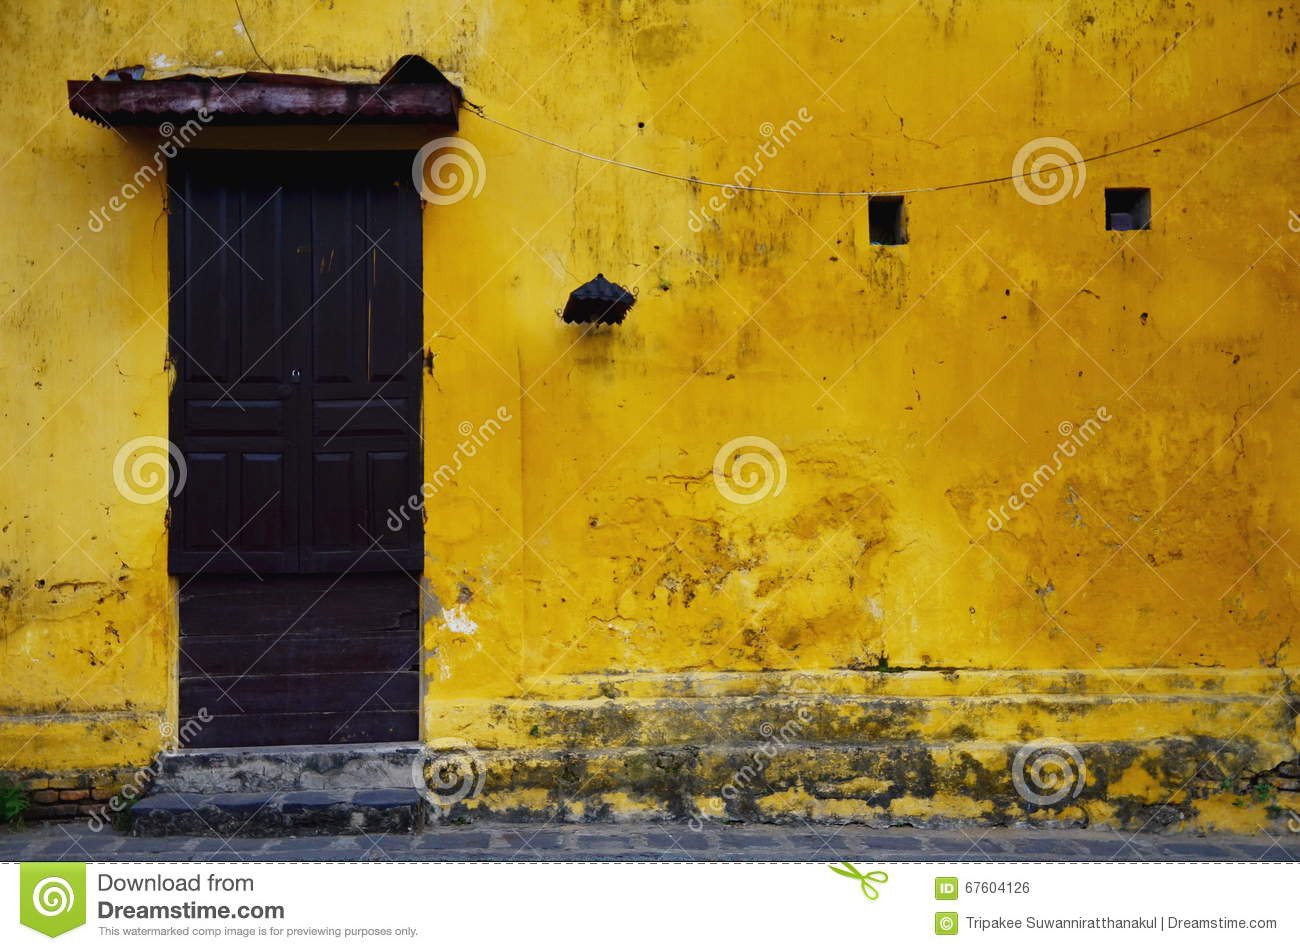 Old and grungy yellow wall